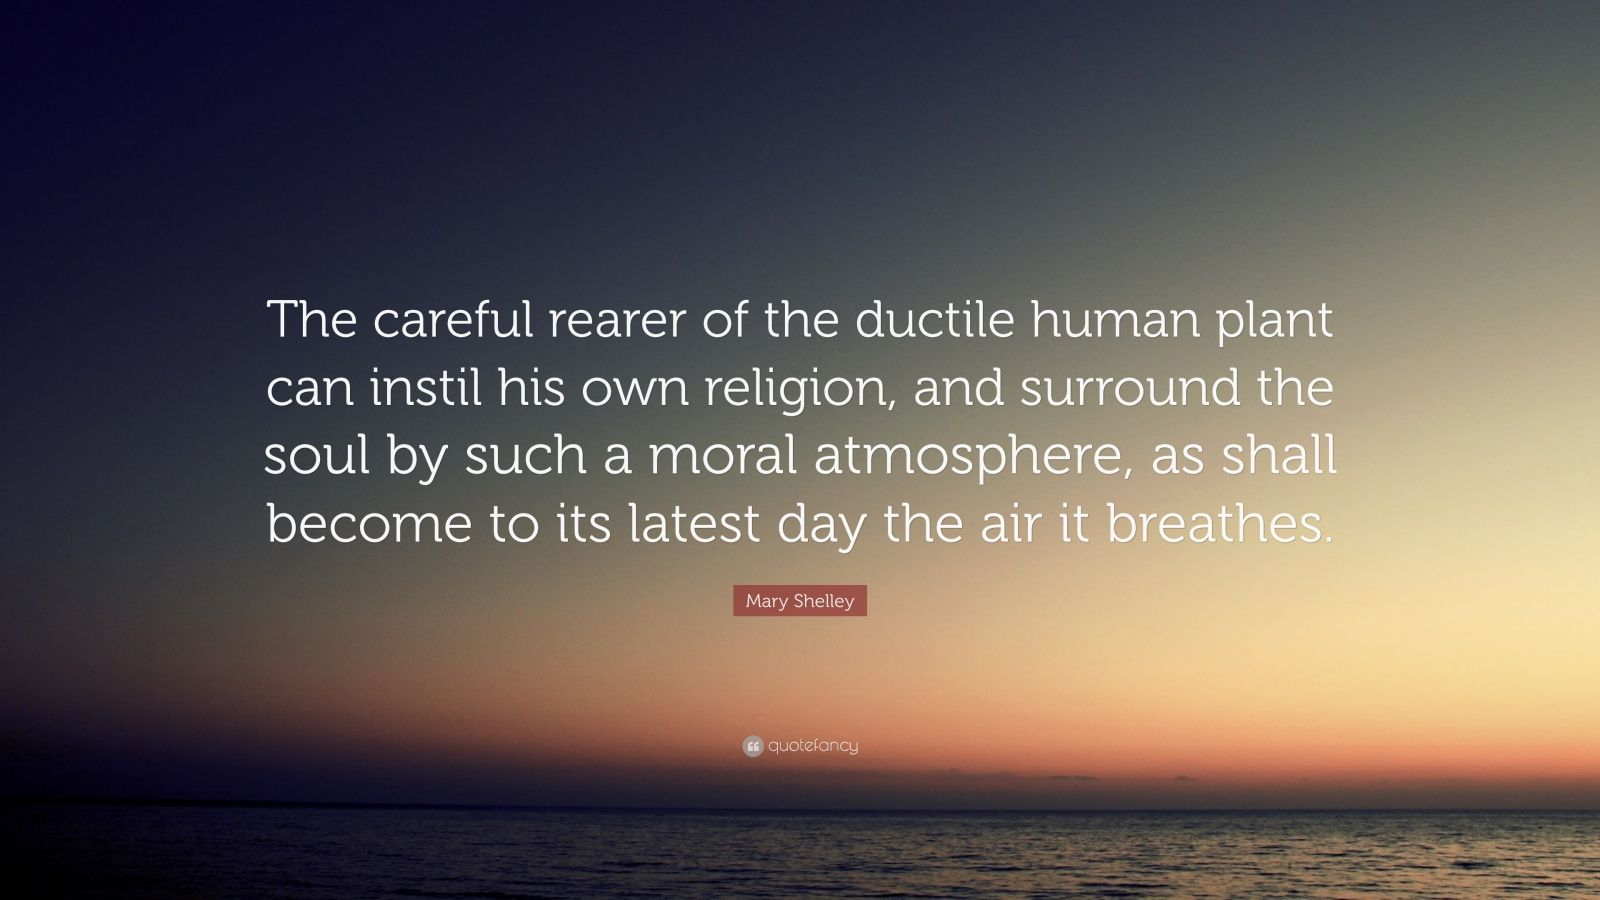 """Mary Shelley Quote: """"The careful rearer of the ductile human plant can instil his own religion, and surround the soul by such a moral atmosphere, as shall become to its latest day the air it breathes."""""""